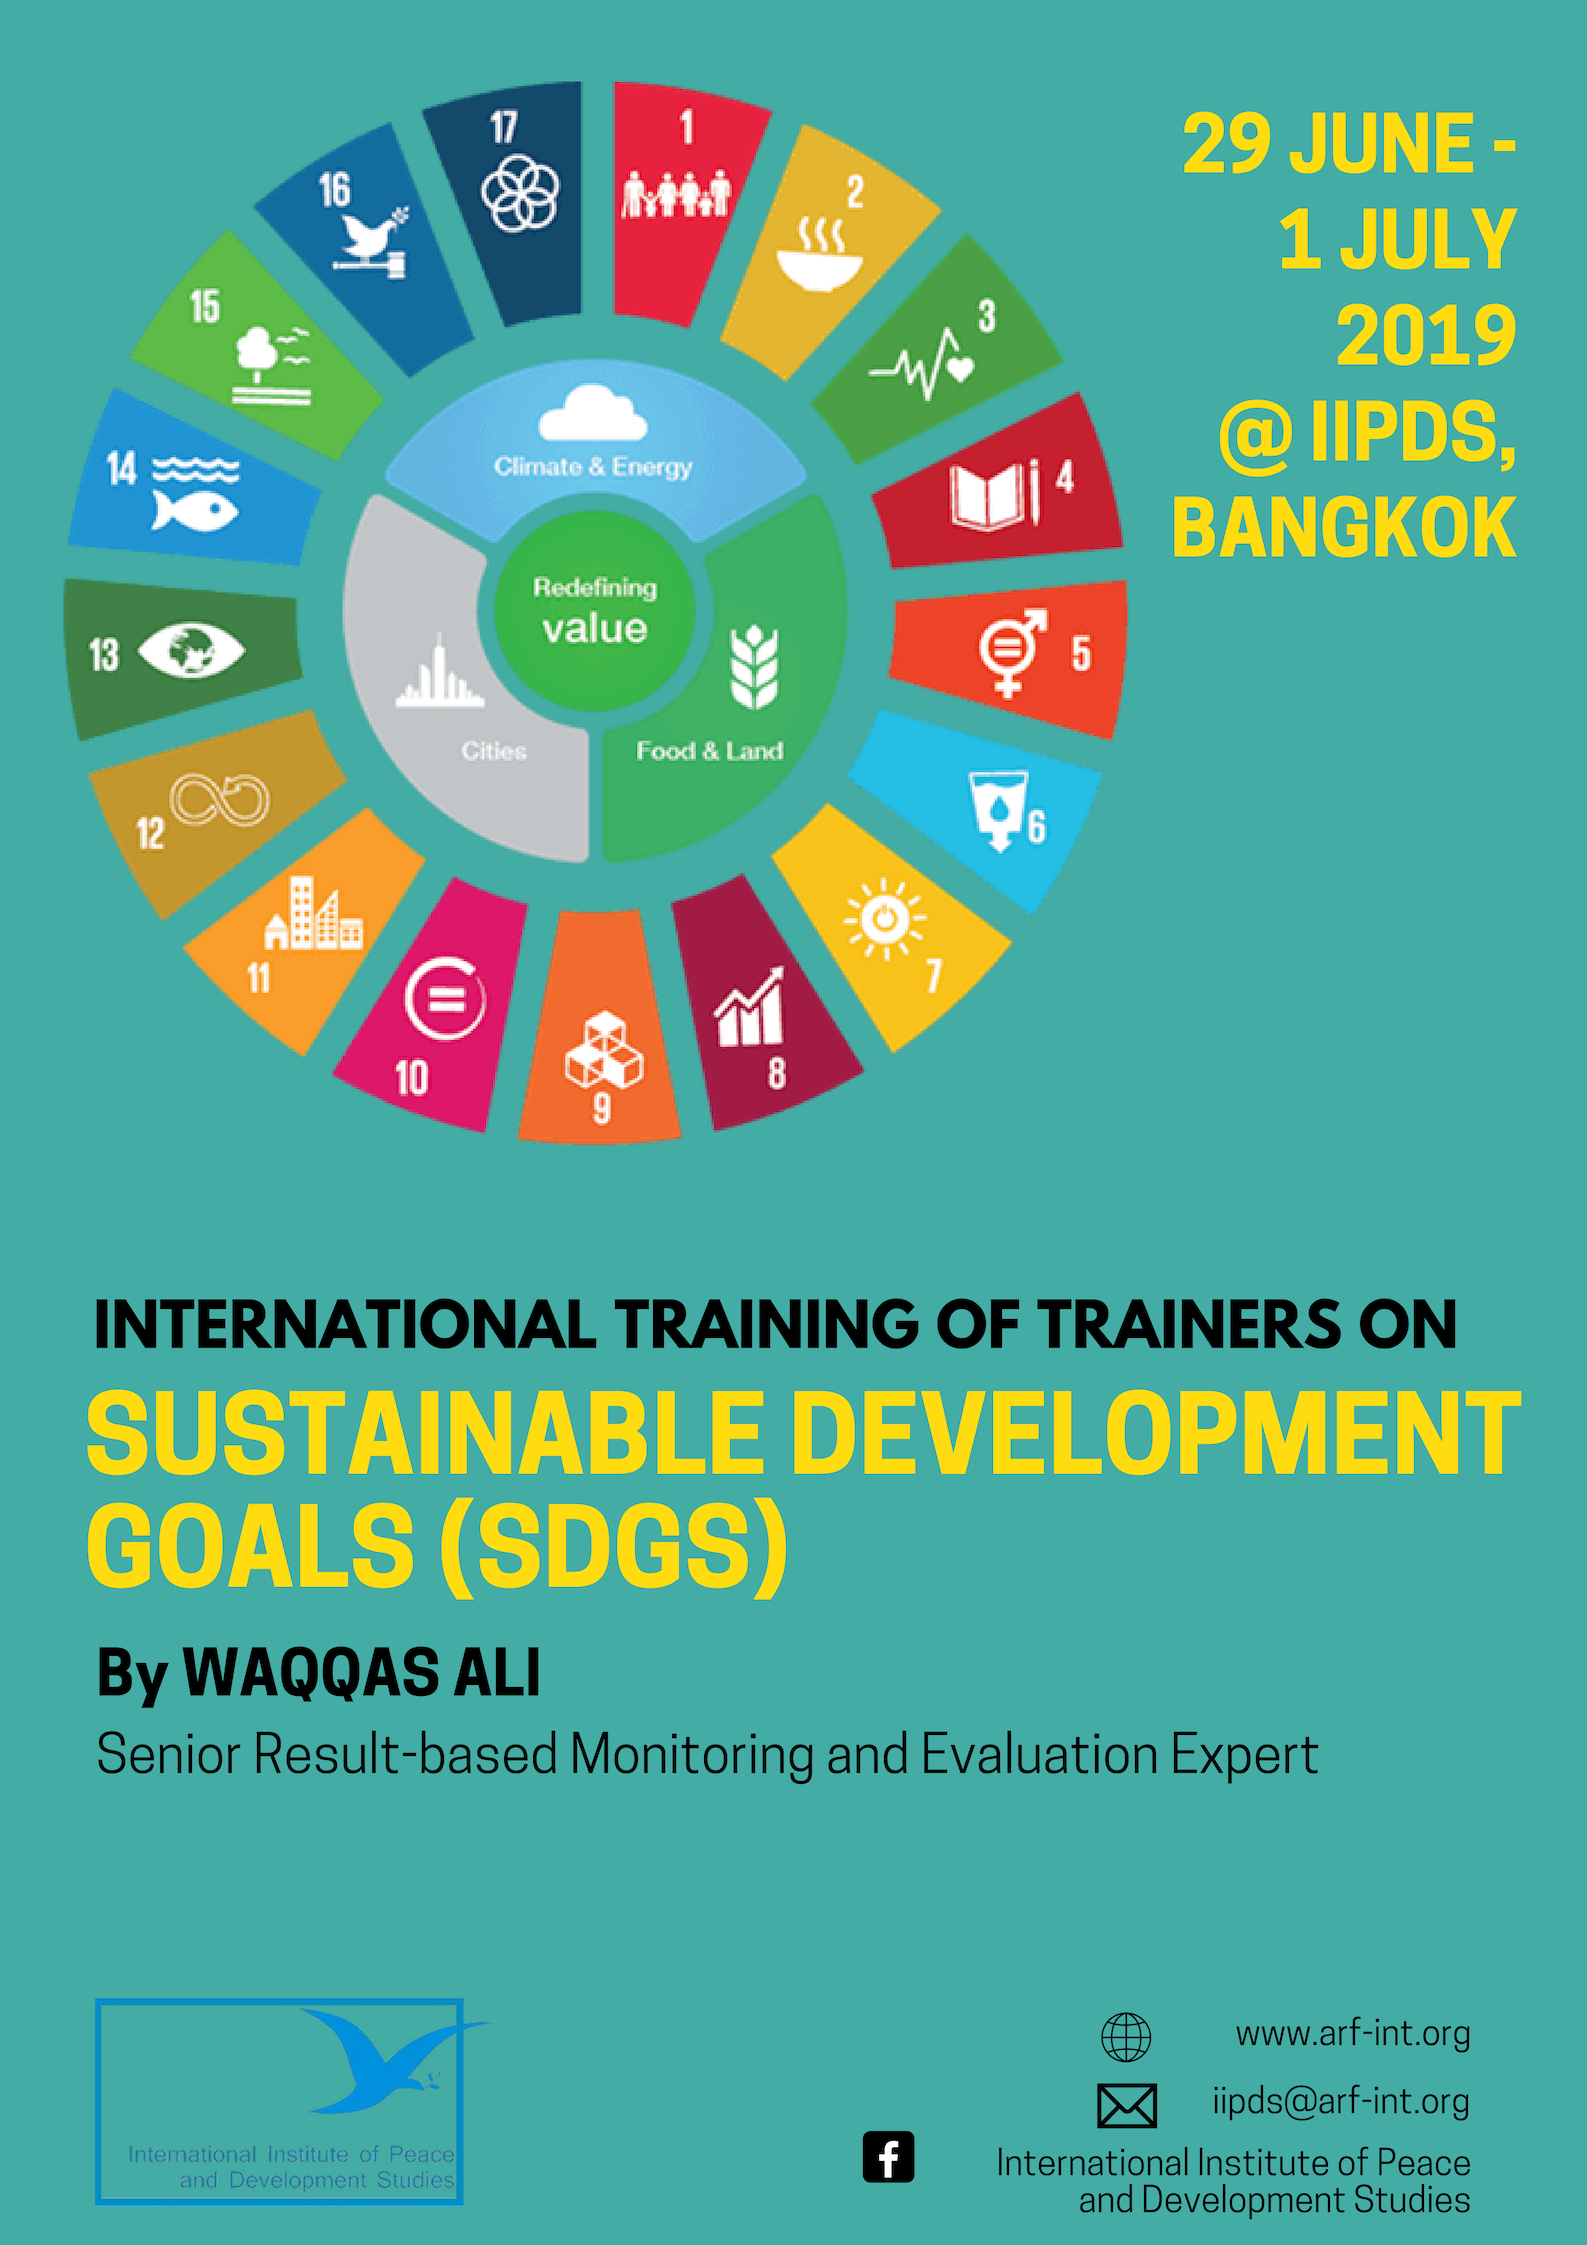 International Training of Trainers on Sustainable Development Goals (SDGs)